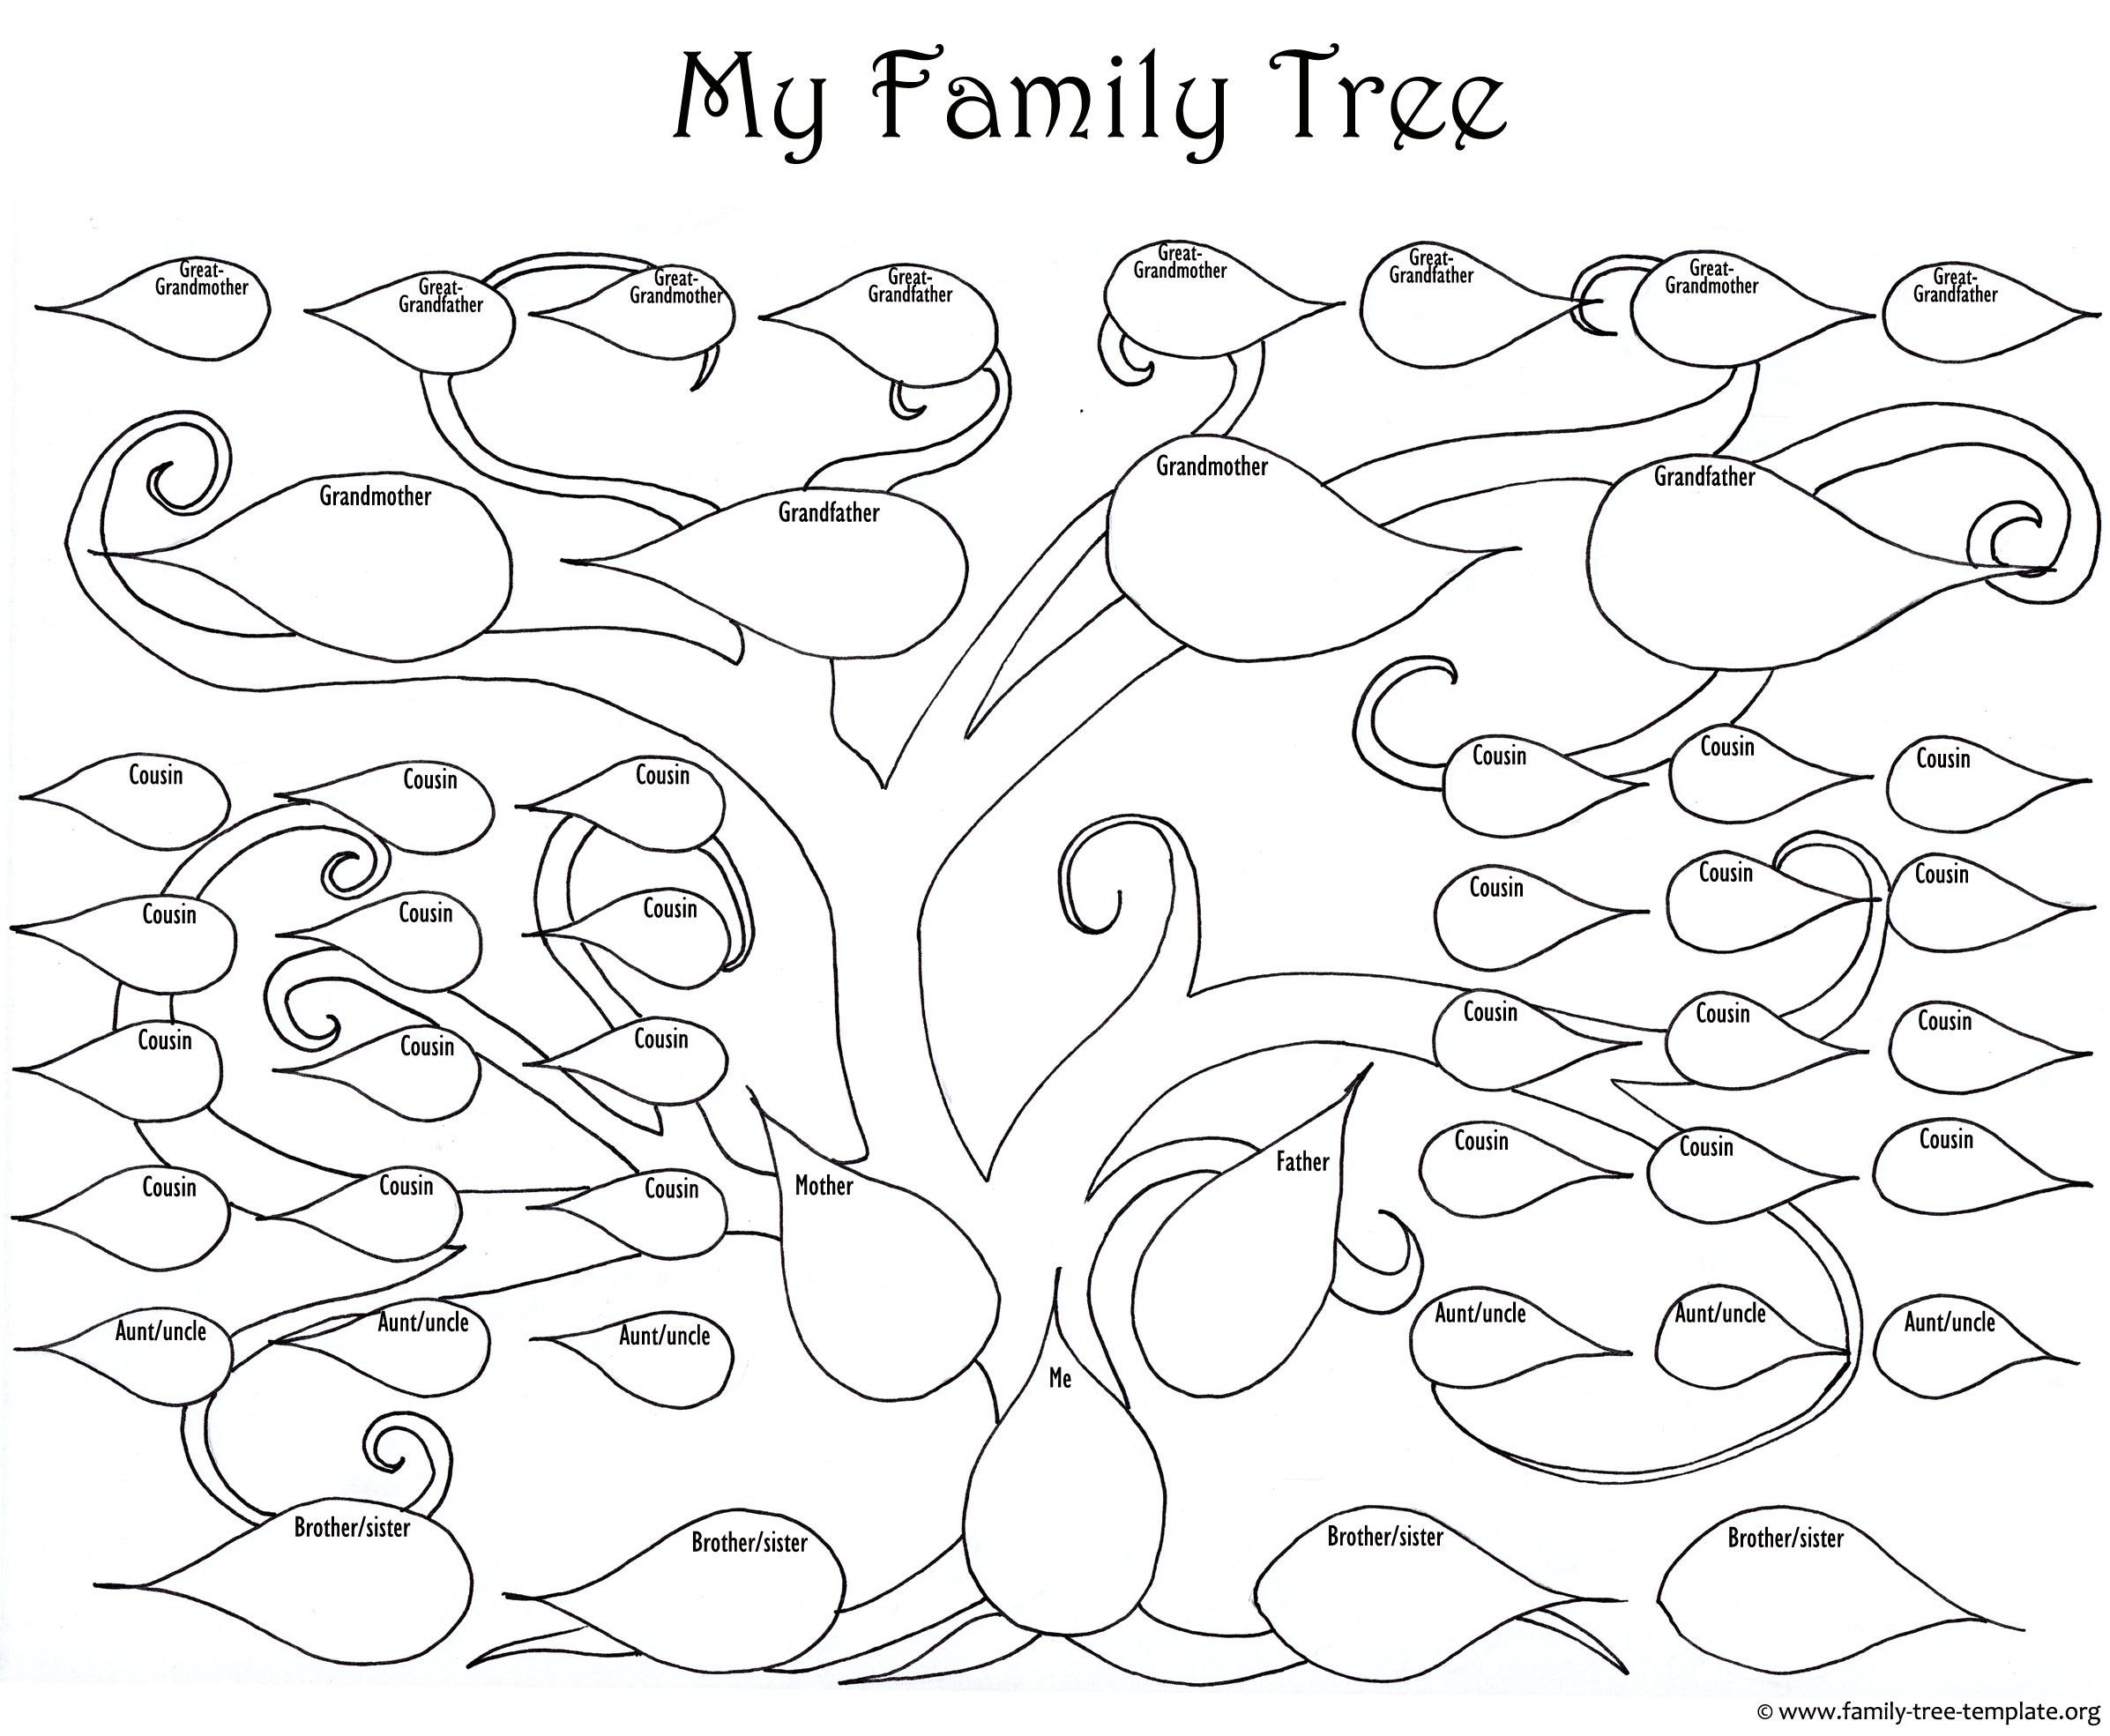 The Big Printable Family Tree As A Fun Coloring Page For Kids